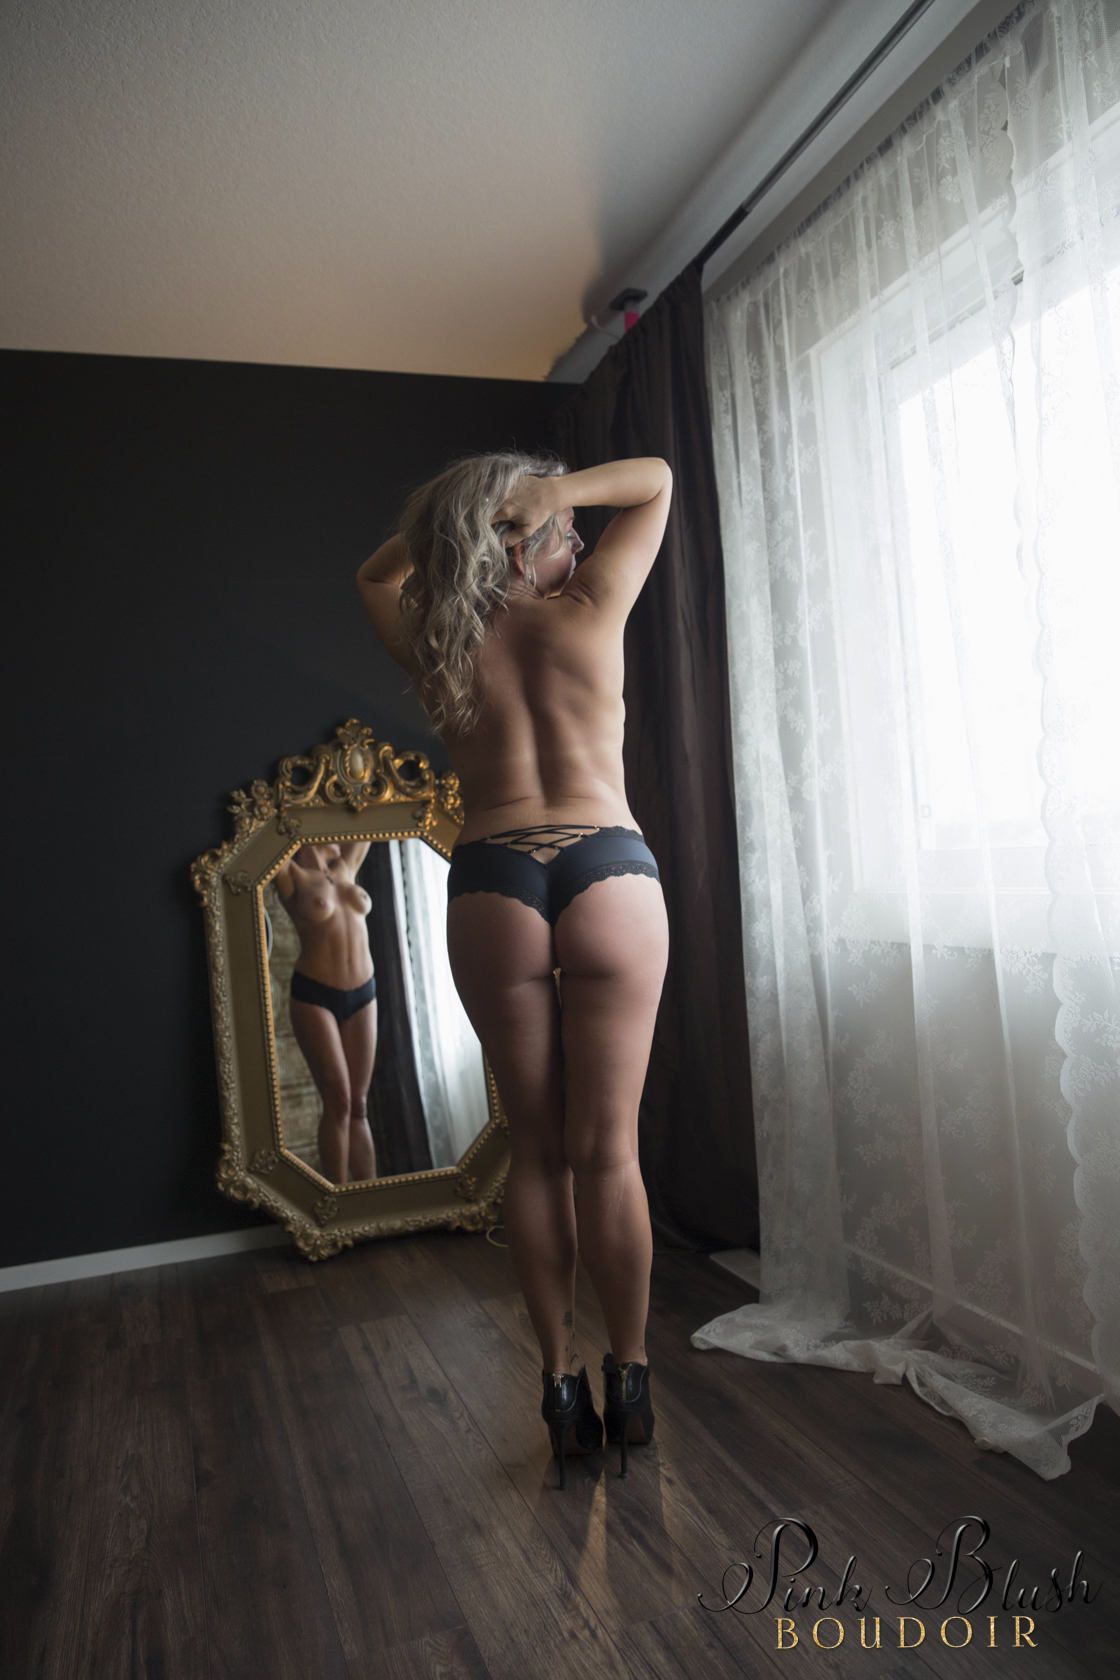 boudoir photos, a topless woman standing in front of a gold mirror